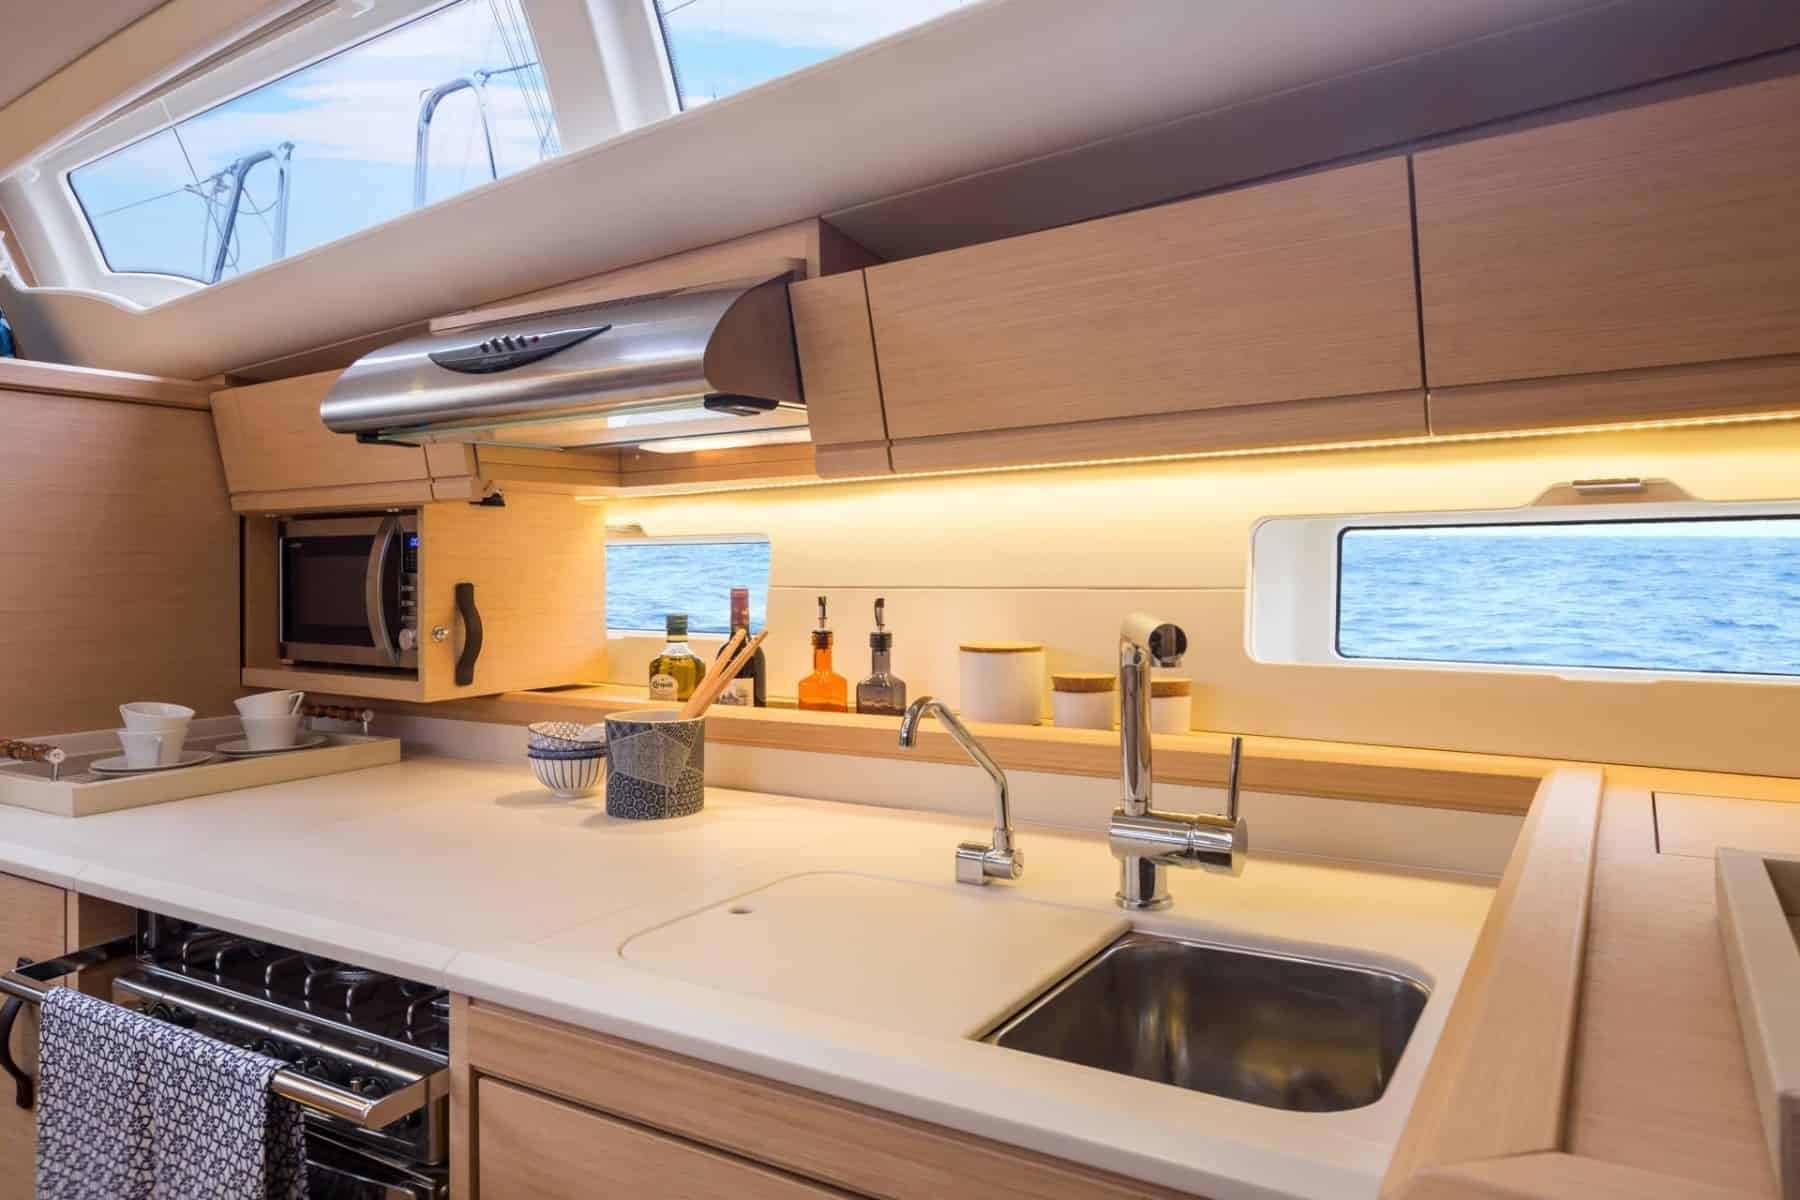 Jeanneau-54-interior-galley-2-charter-ownership-yacht